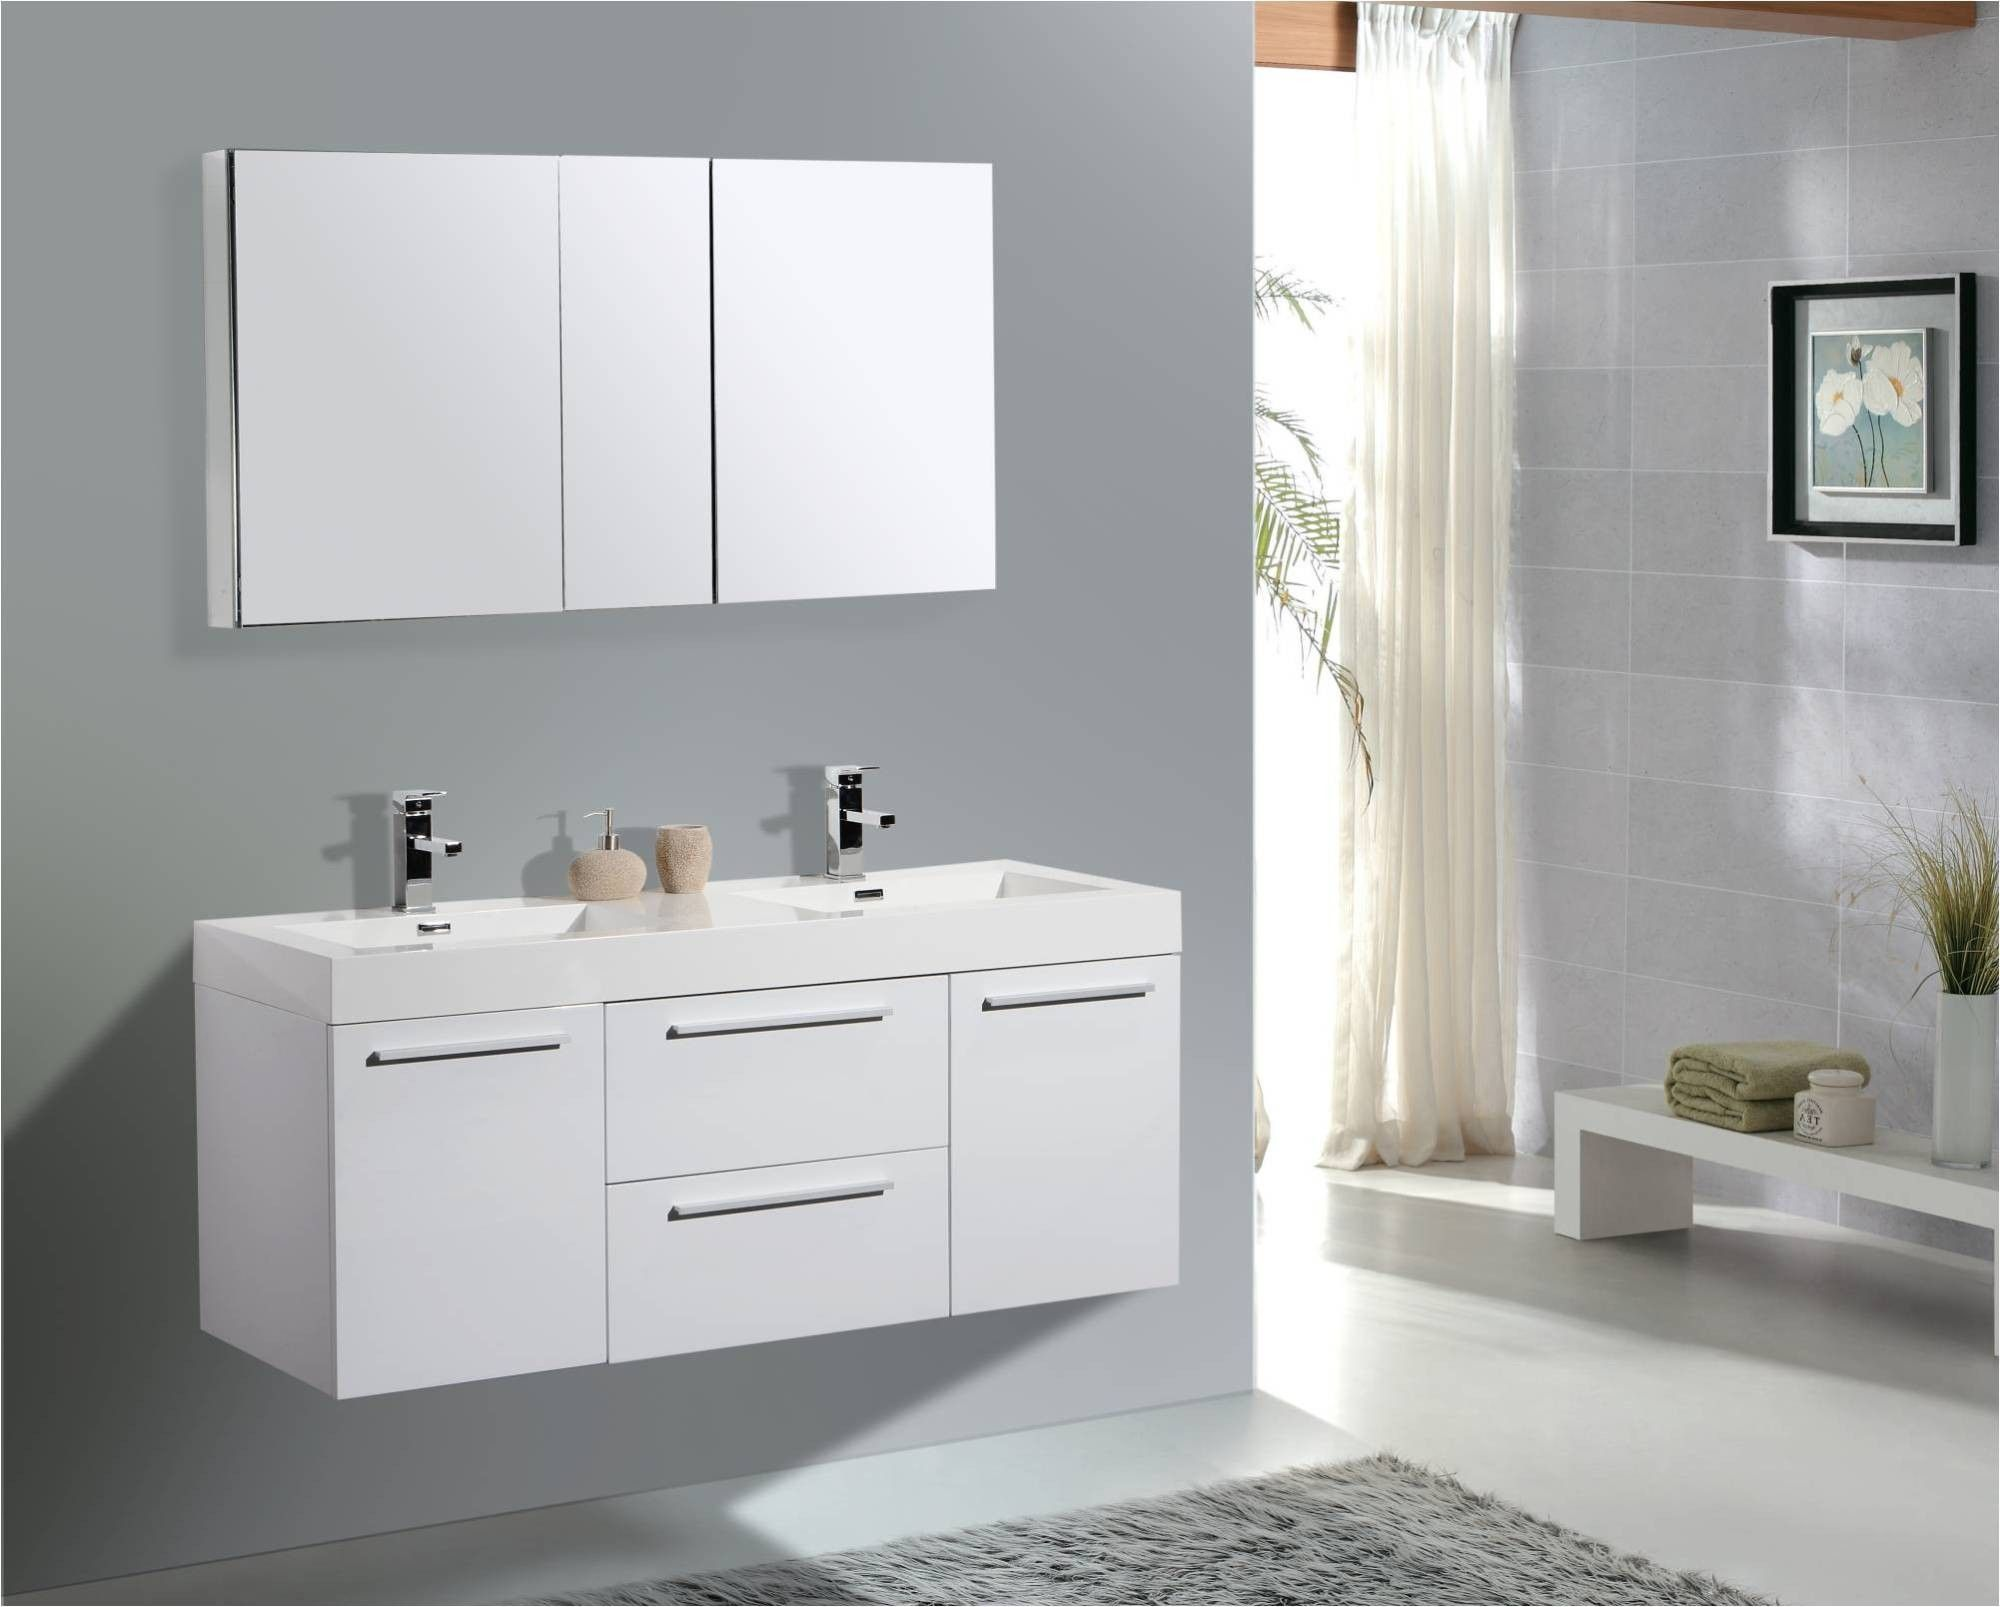 Elegant Style Of Wall Mounted Bathroom Vanity: Wall Mounted Bathroom Vanity  With 54 Inch Bathroom